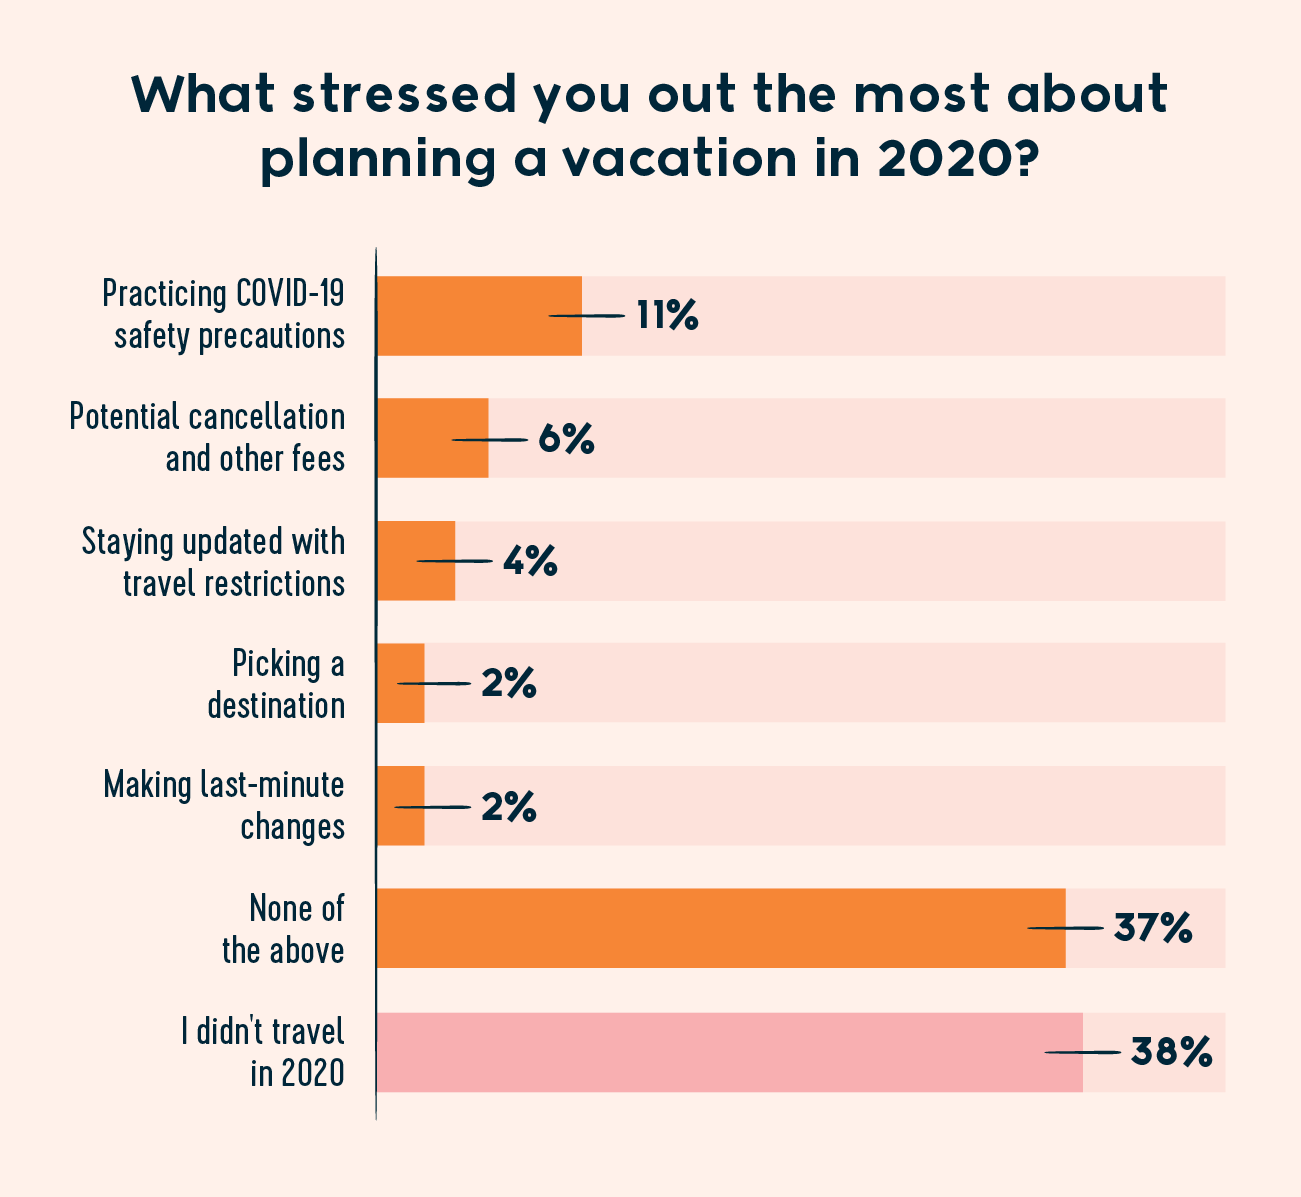 what stressed you out the most about planning a vacation in 2020